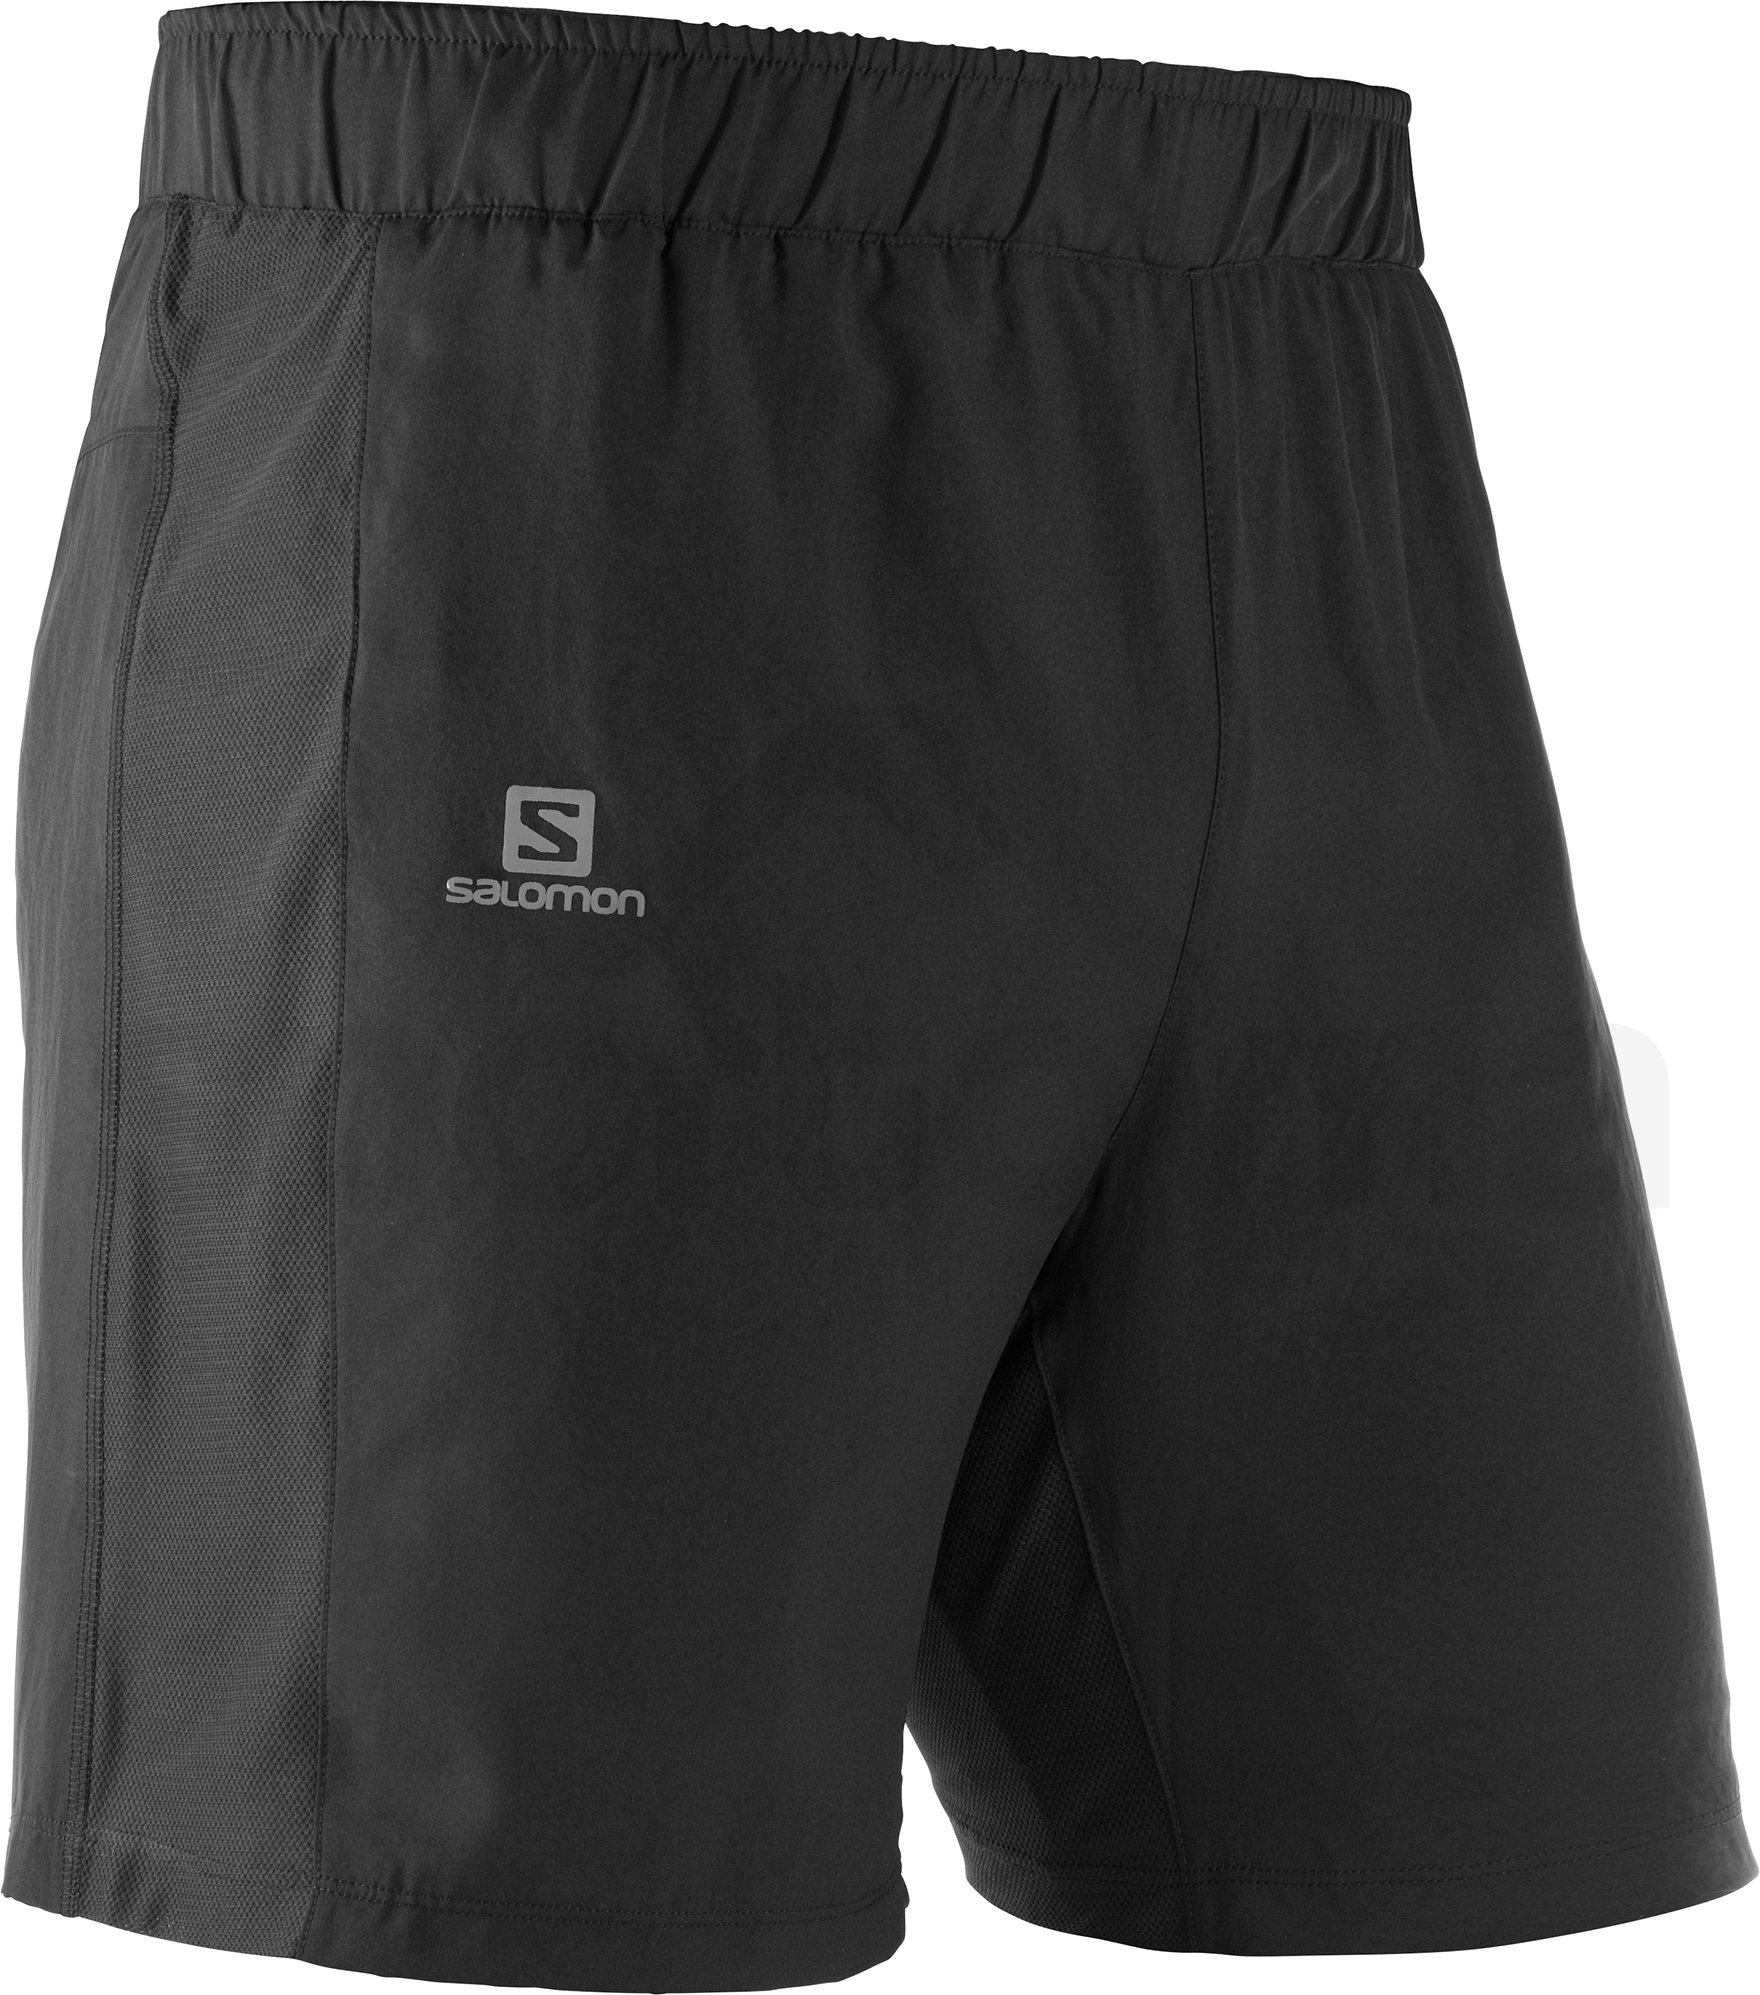 LC1048700_2_m_agile2in1short_black_run.jpg.originaln